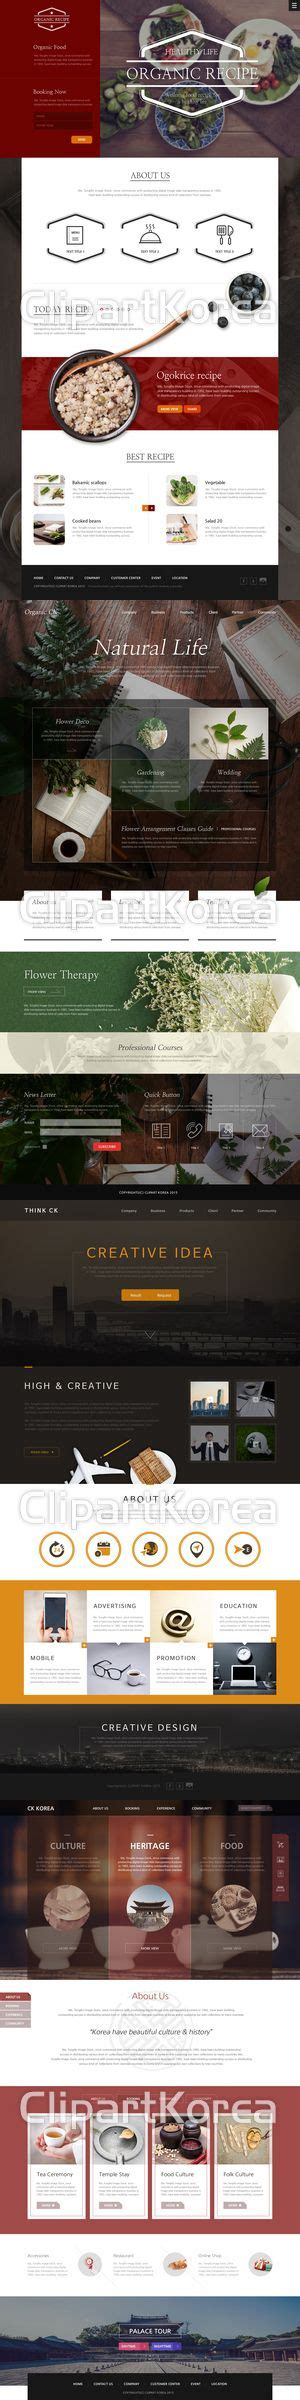 14818 business presentation images 113 best images about web design 클립아트코리아 on